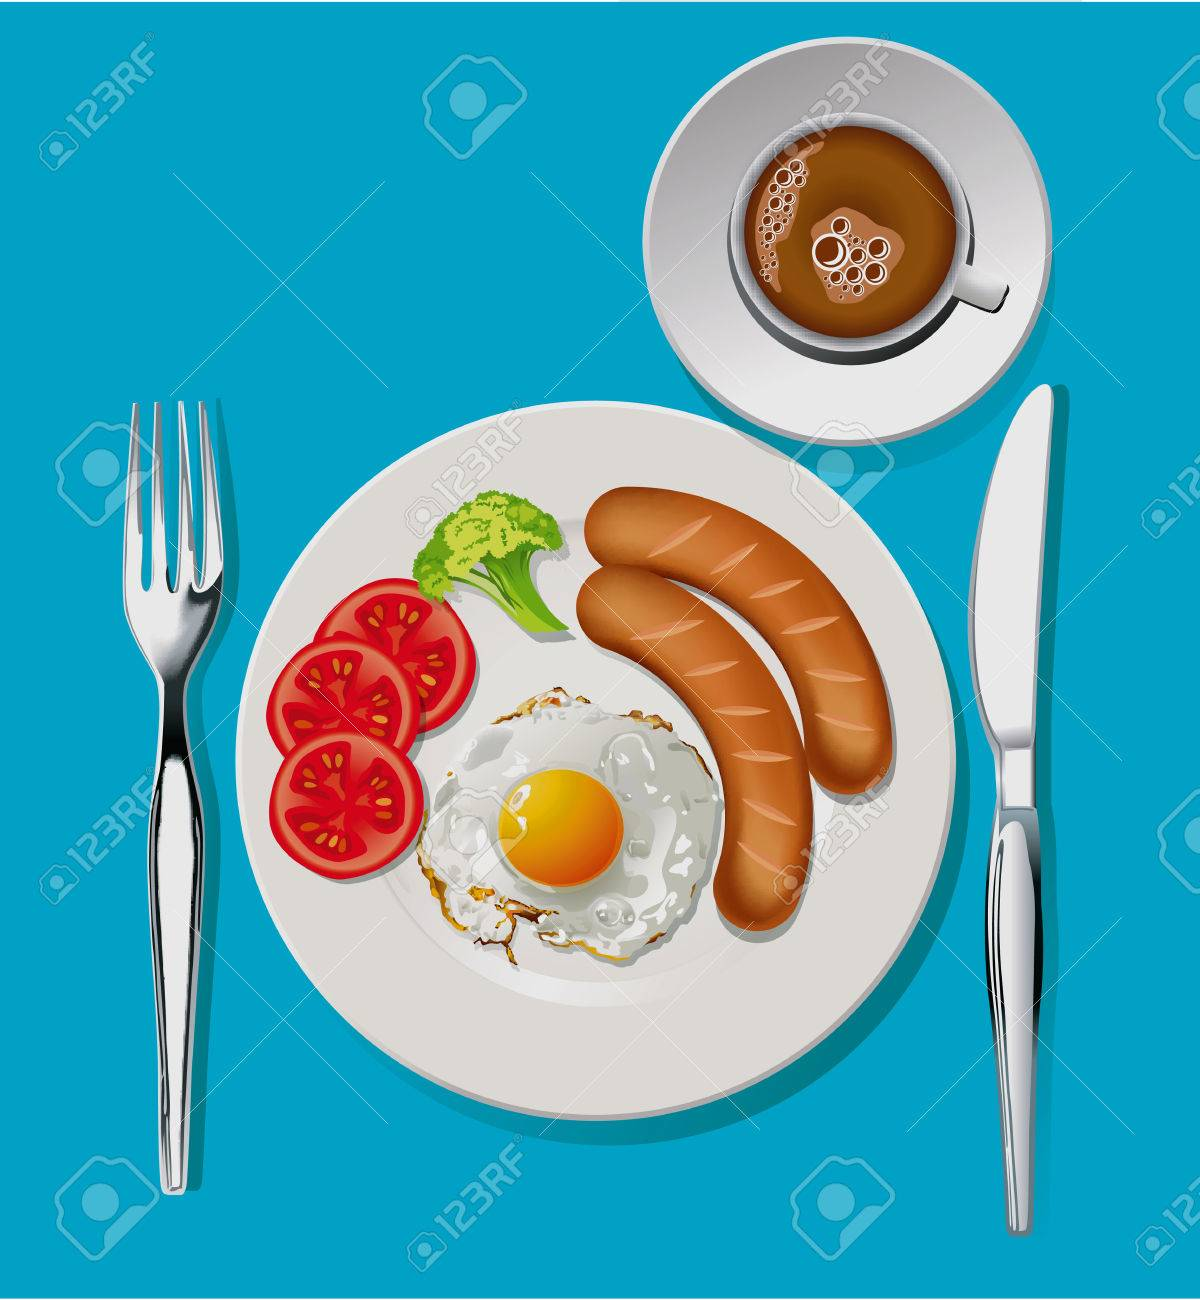 Illustration Of Breakfast Omelet Sausage Broccoli And Tomato Royalty Free Cliparts Vectors And Stock Illustration Image 31071051